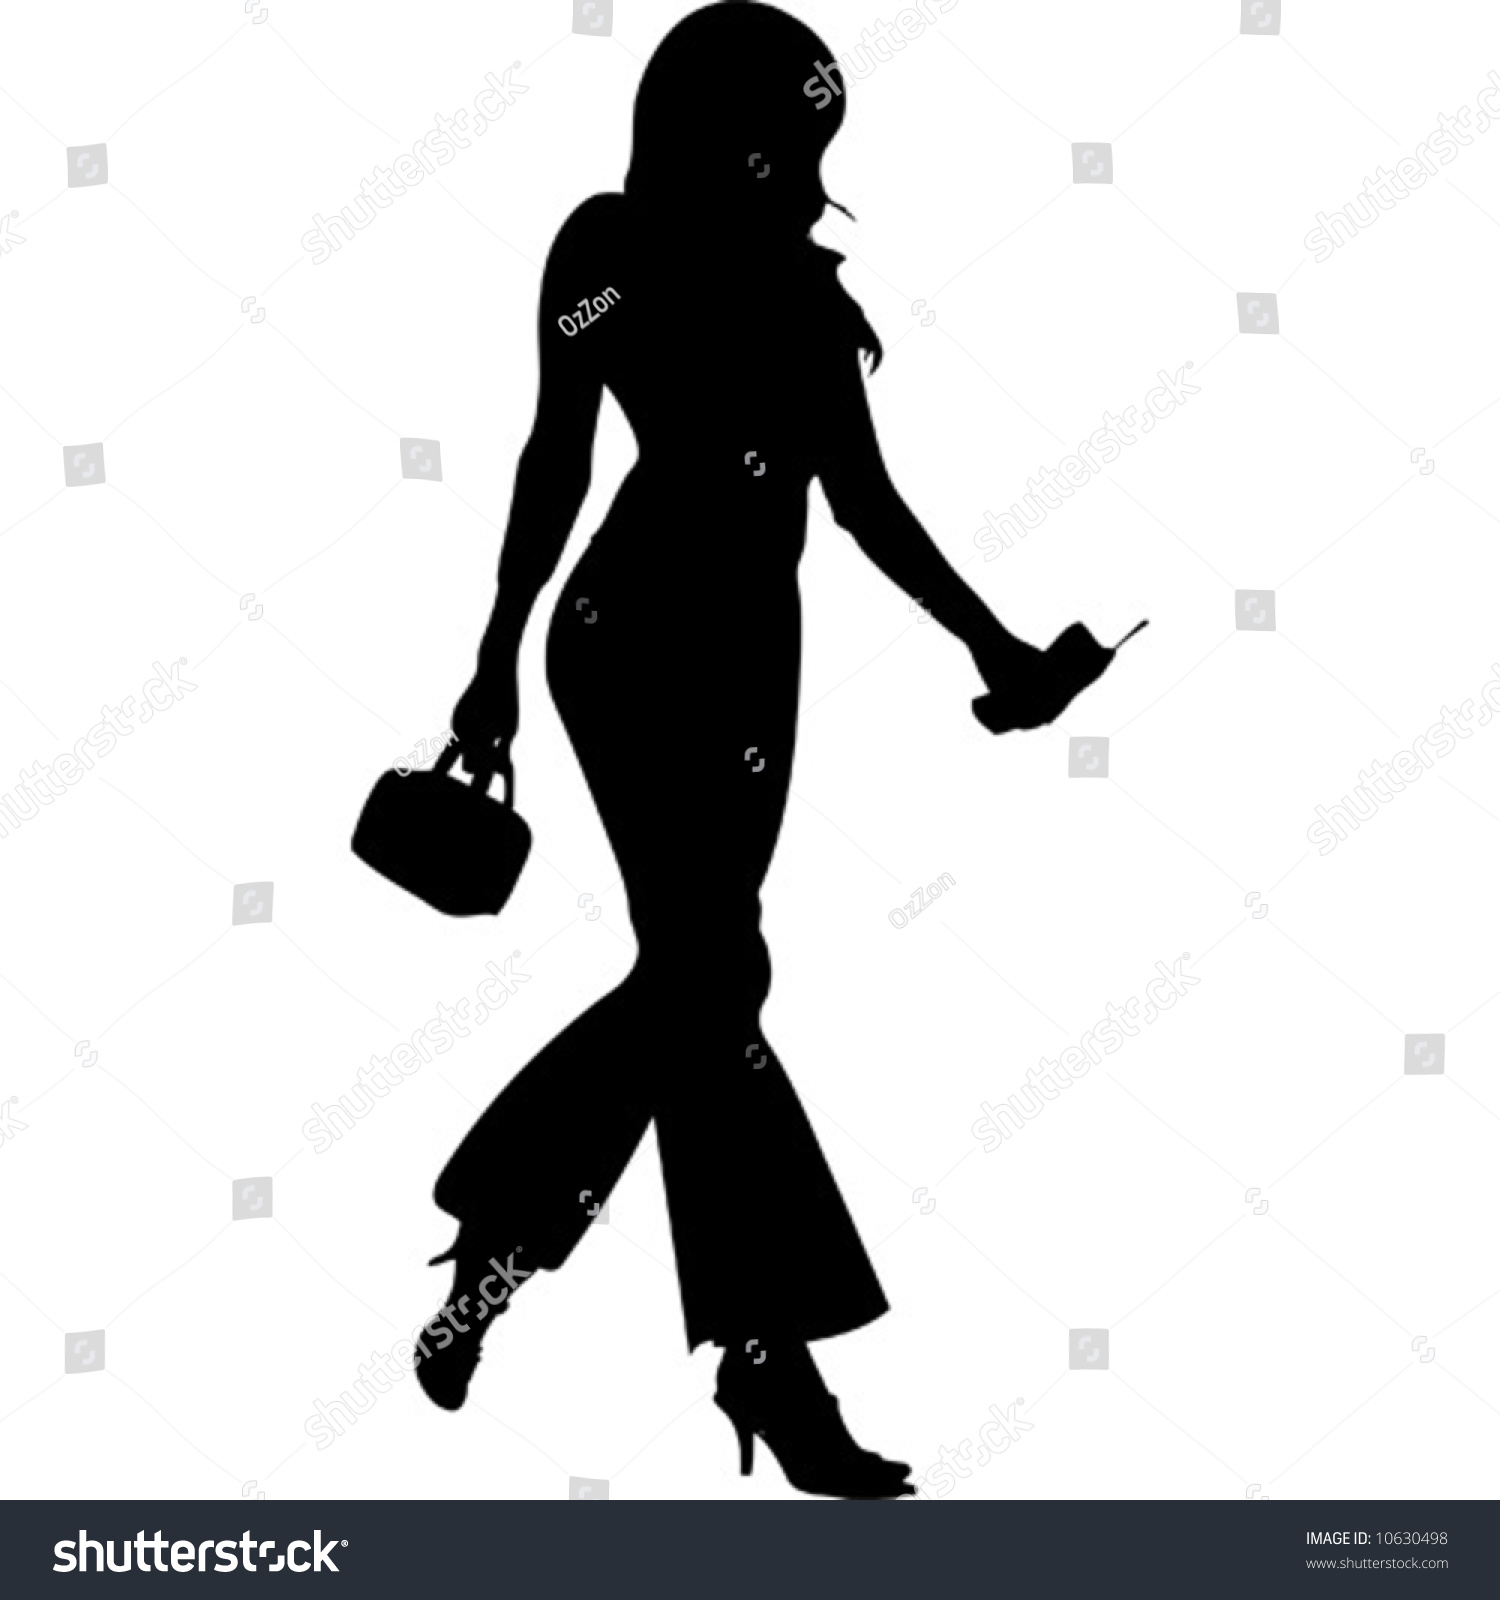 Businesswoman Silhouette Images - Reverse Search